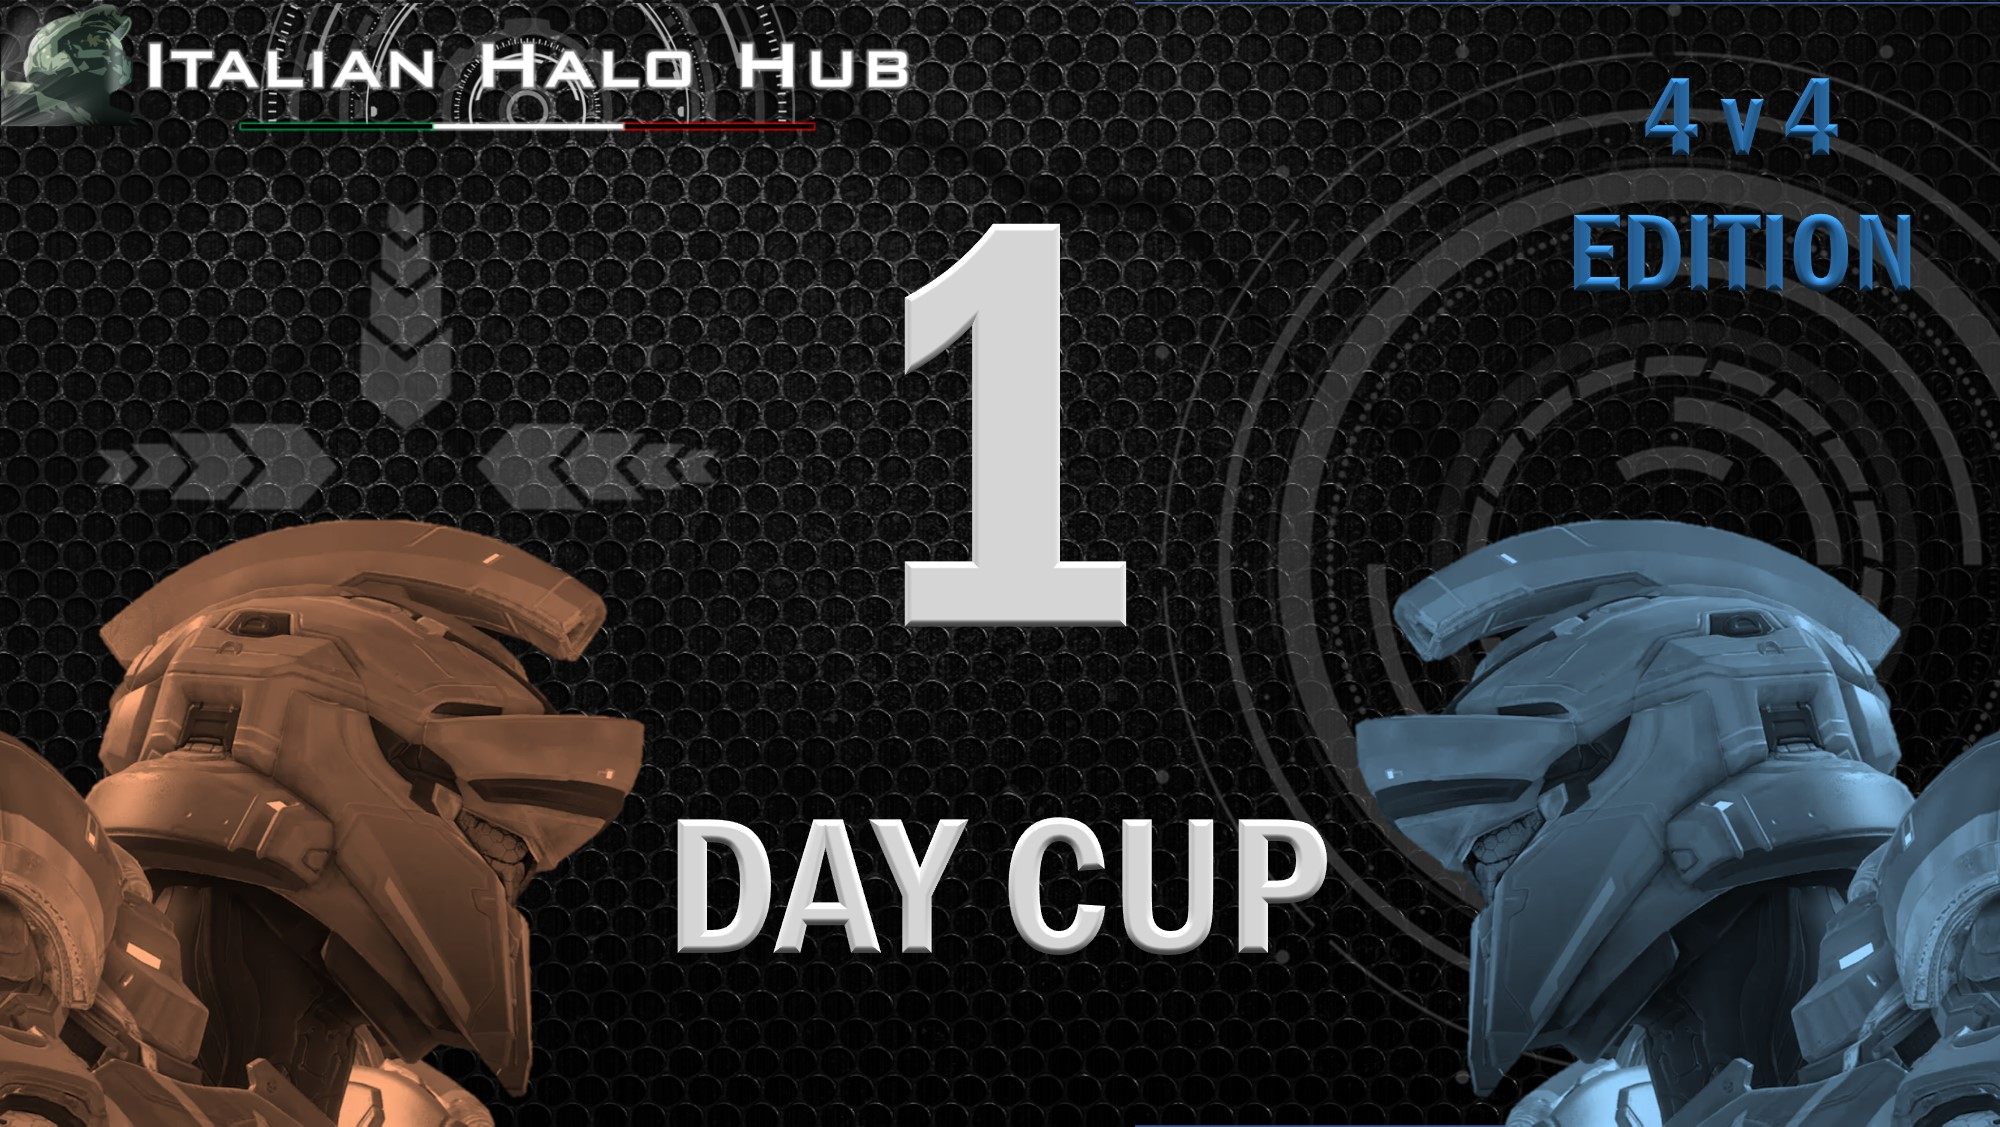 1 DAY CUP